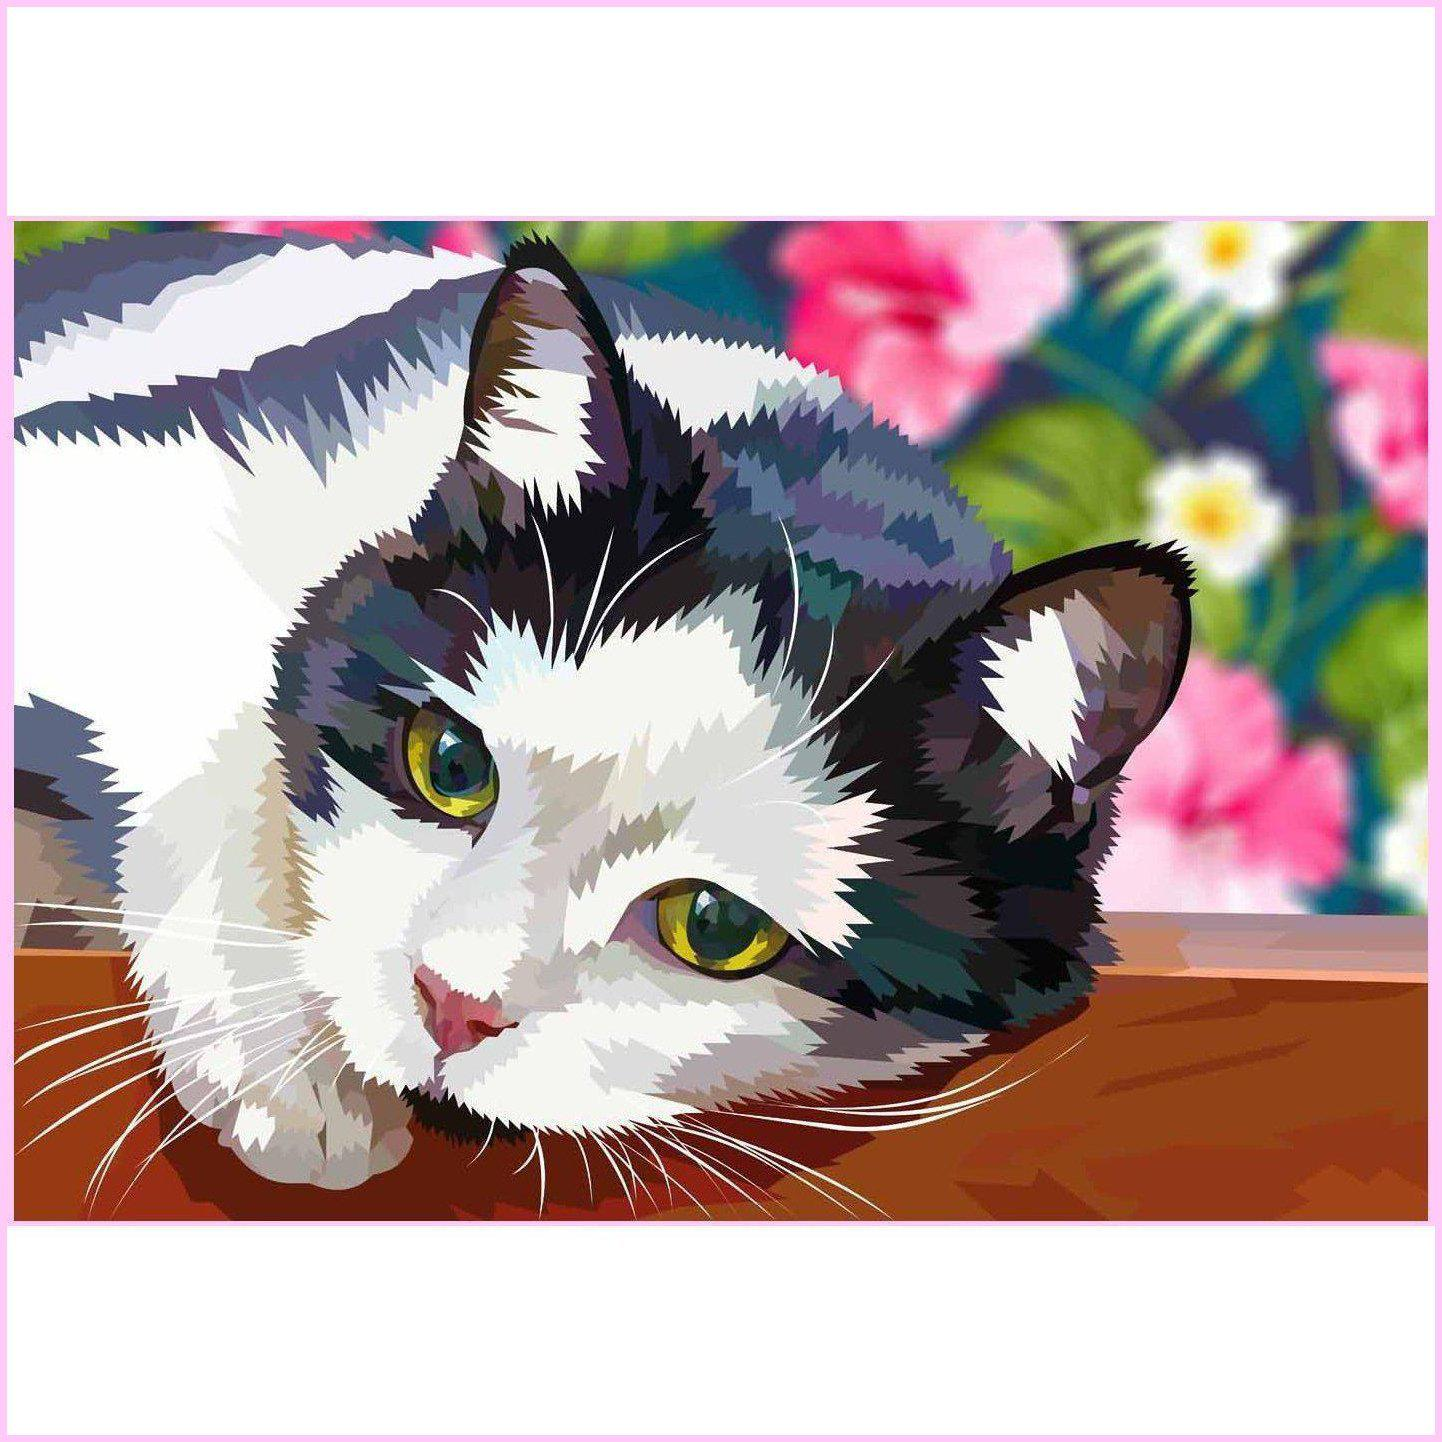 Garden Cat-Diamond Painting Kit USPS-35x50cm (14x20 in)-Square-Heartful Diamonds